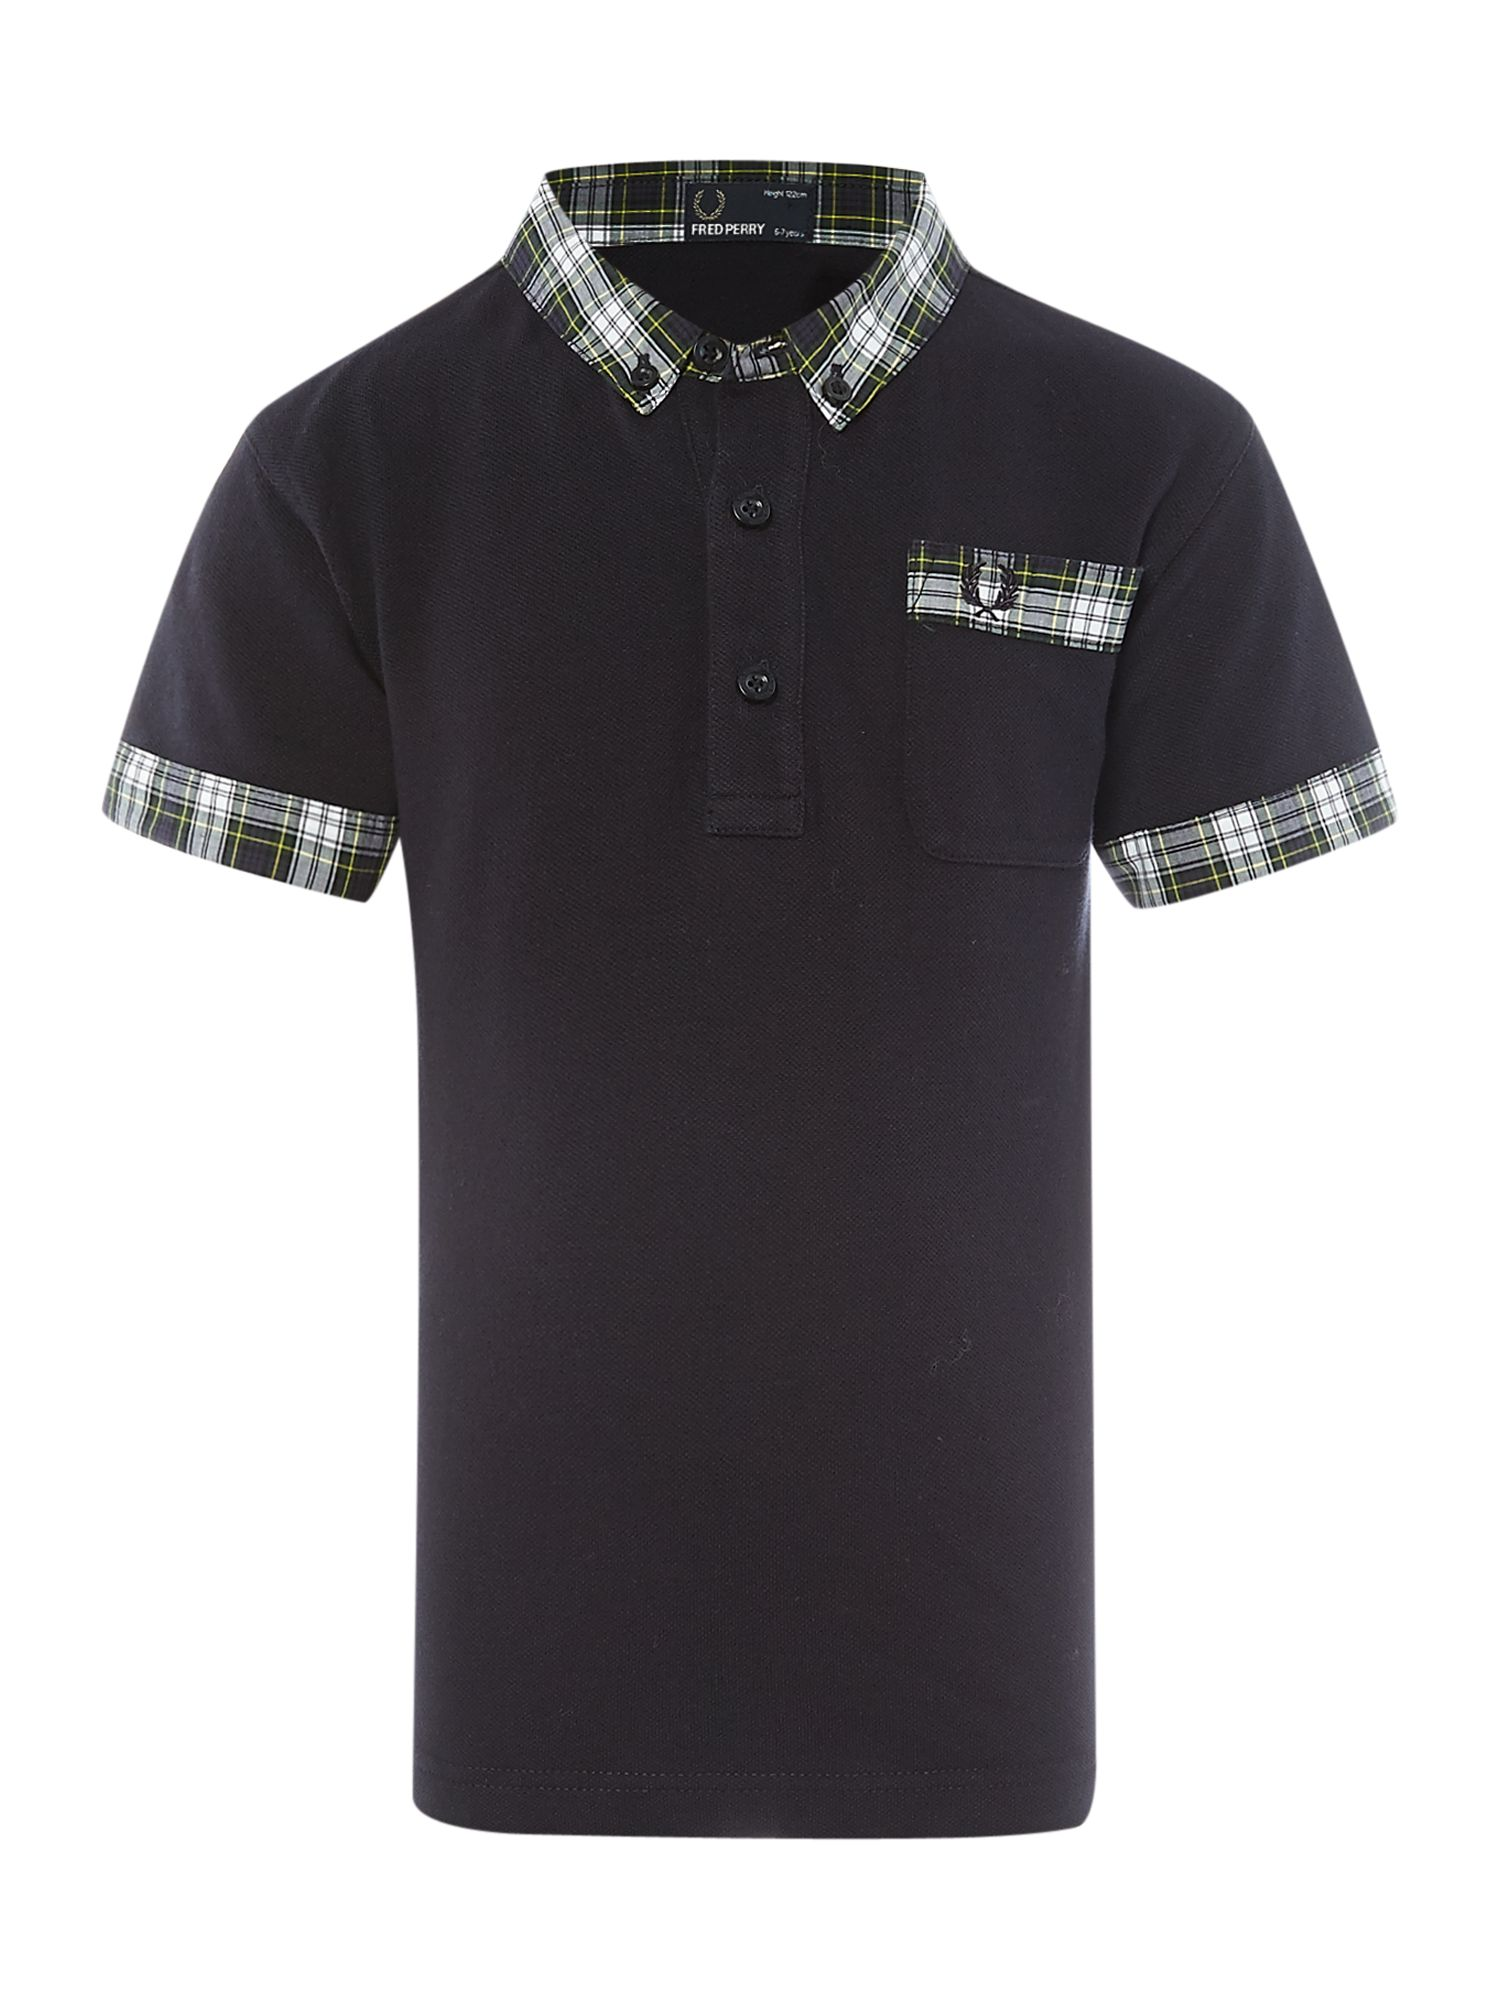 Woven check collar polo shirt